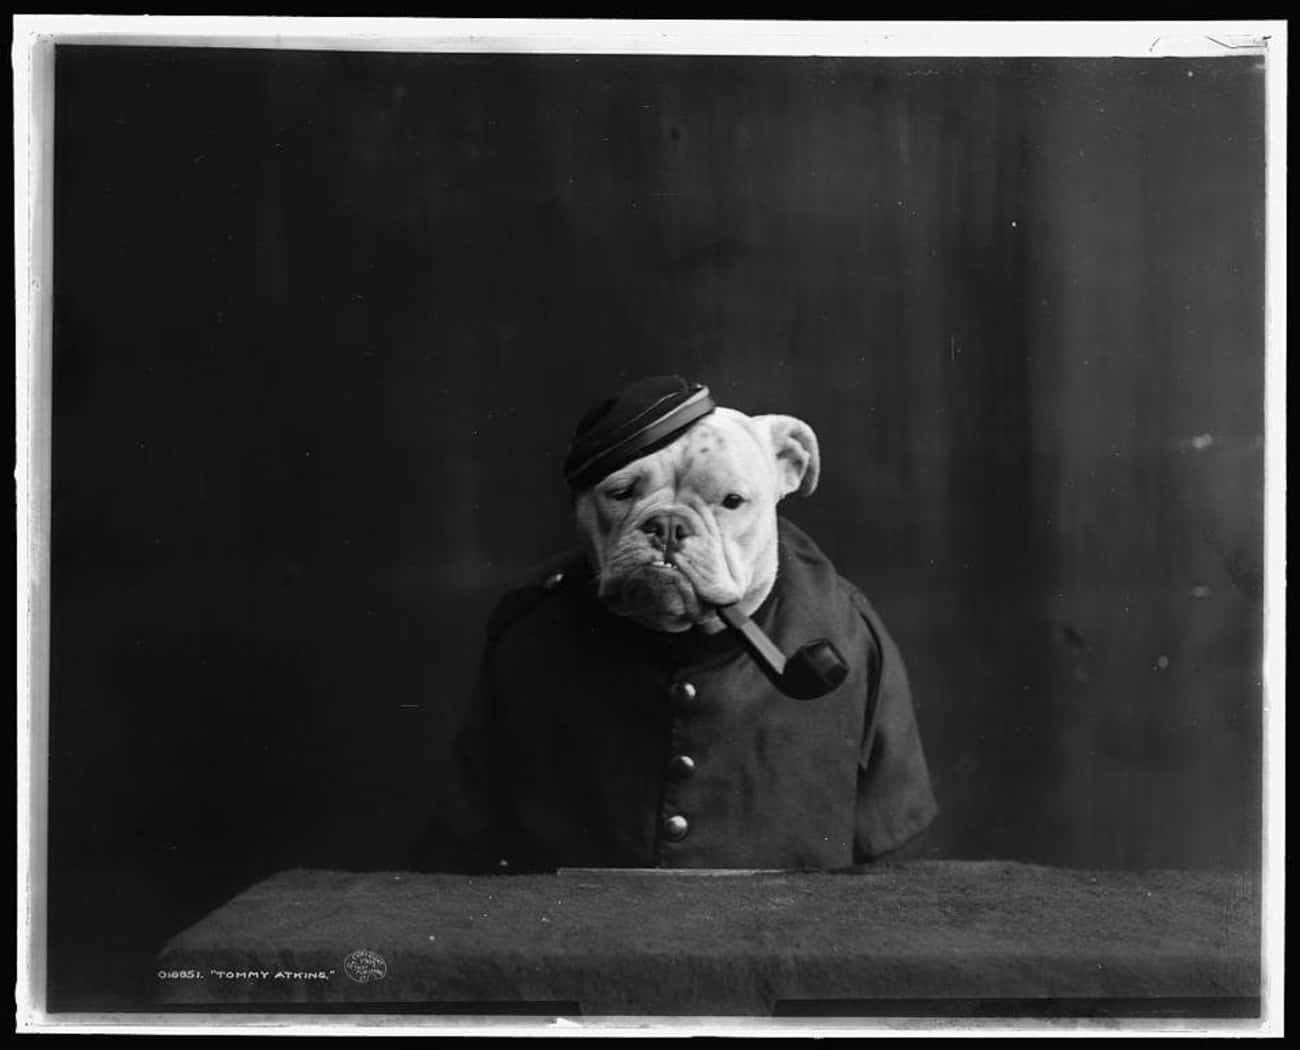 Tommy Atkins Is Ready To Do Hi is listed (or ranked) 3 on the list The 18 Proudest And Most Sophisticated History Dogs We Could Find On The Internet